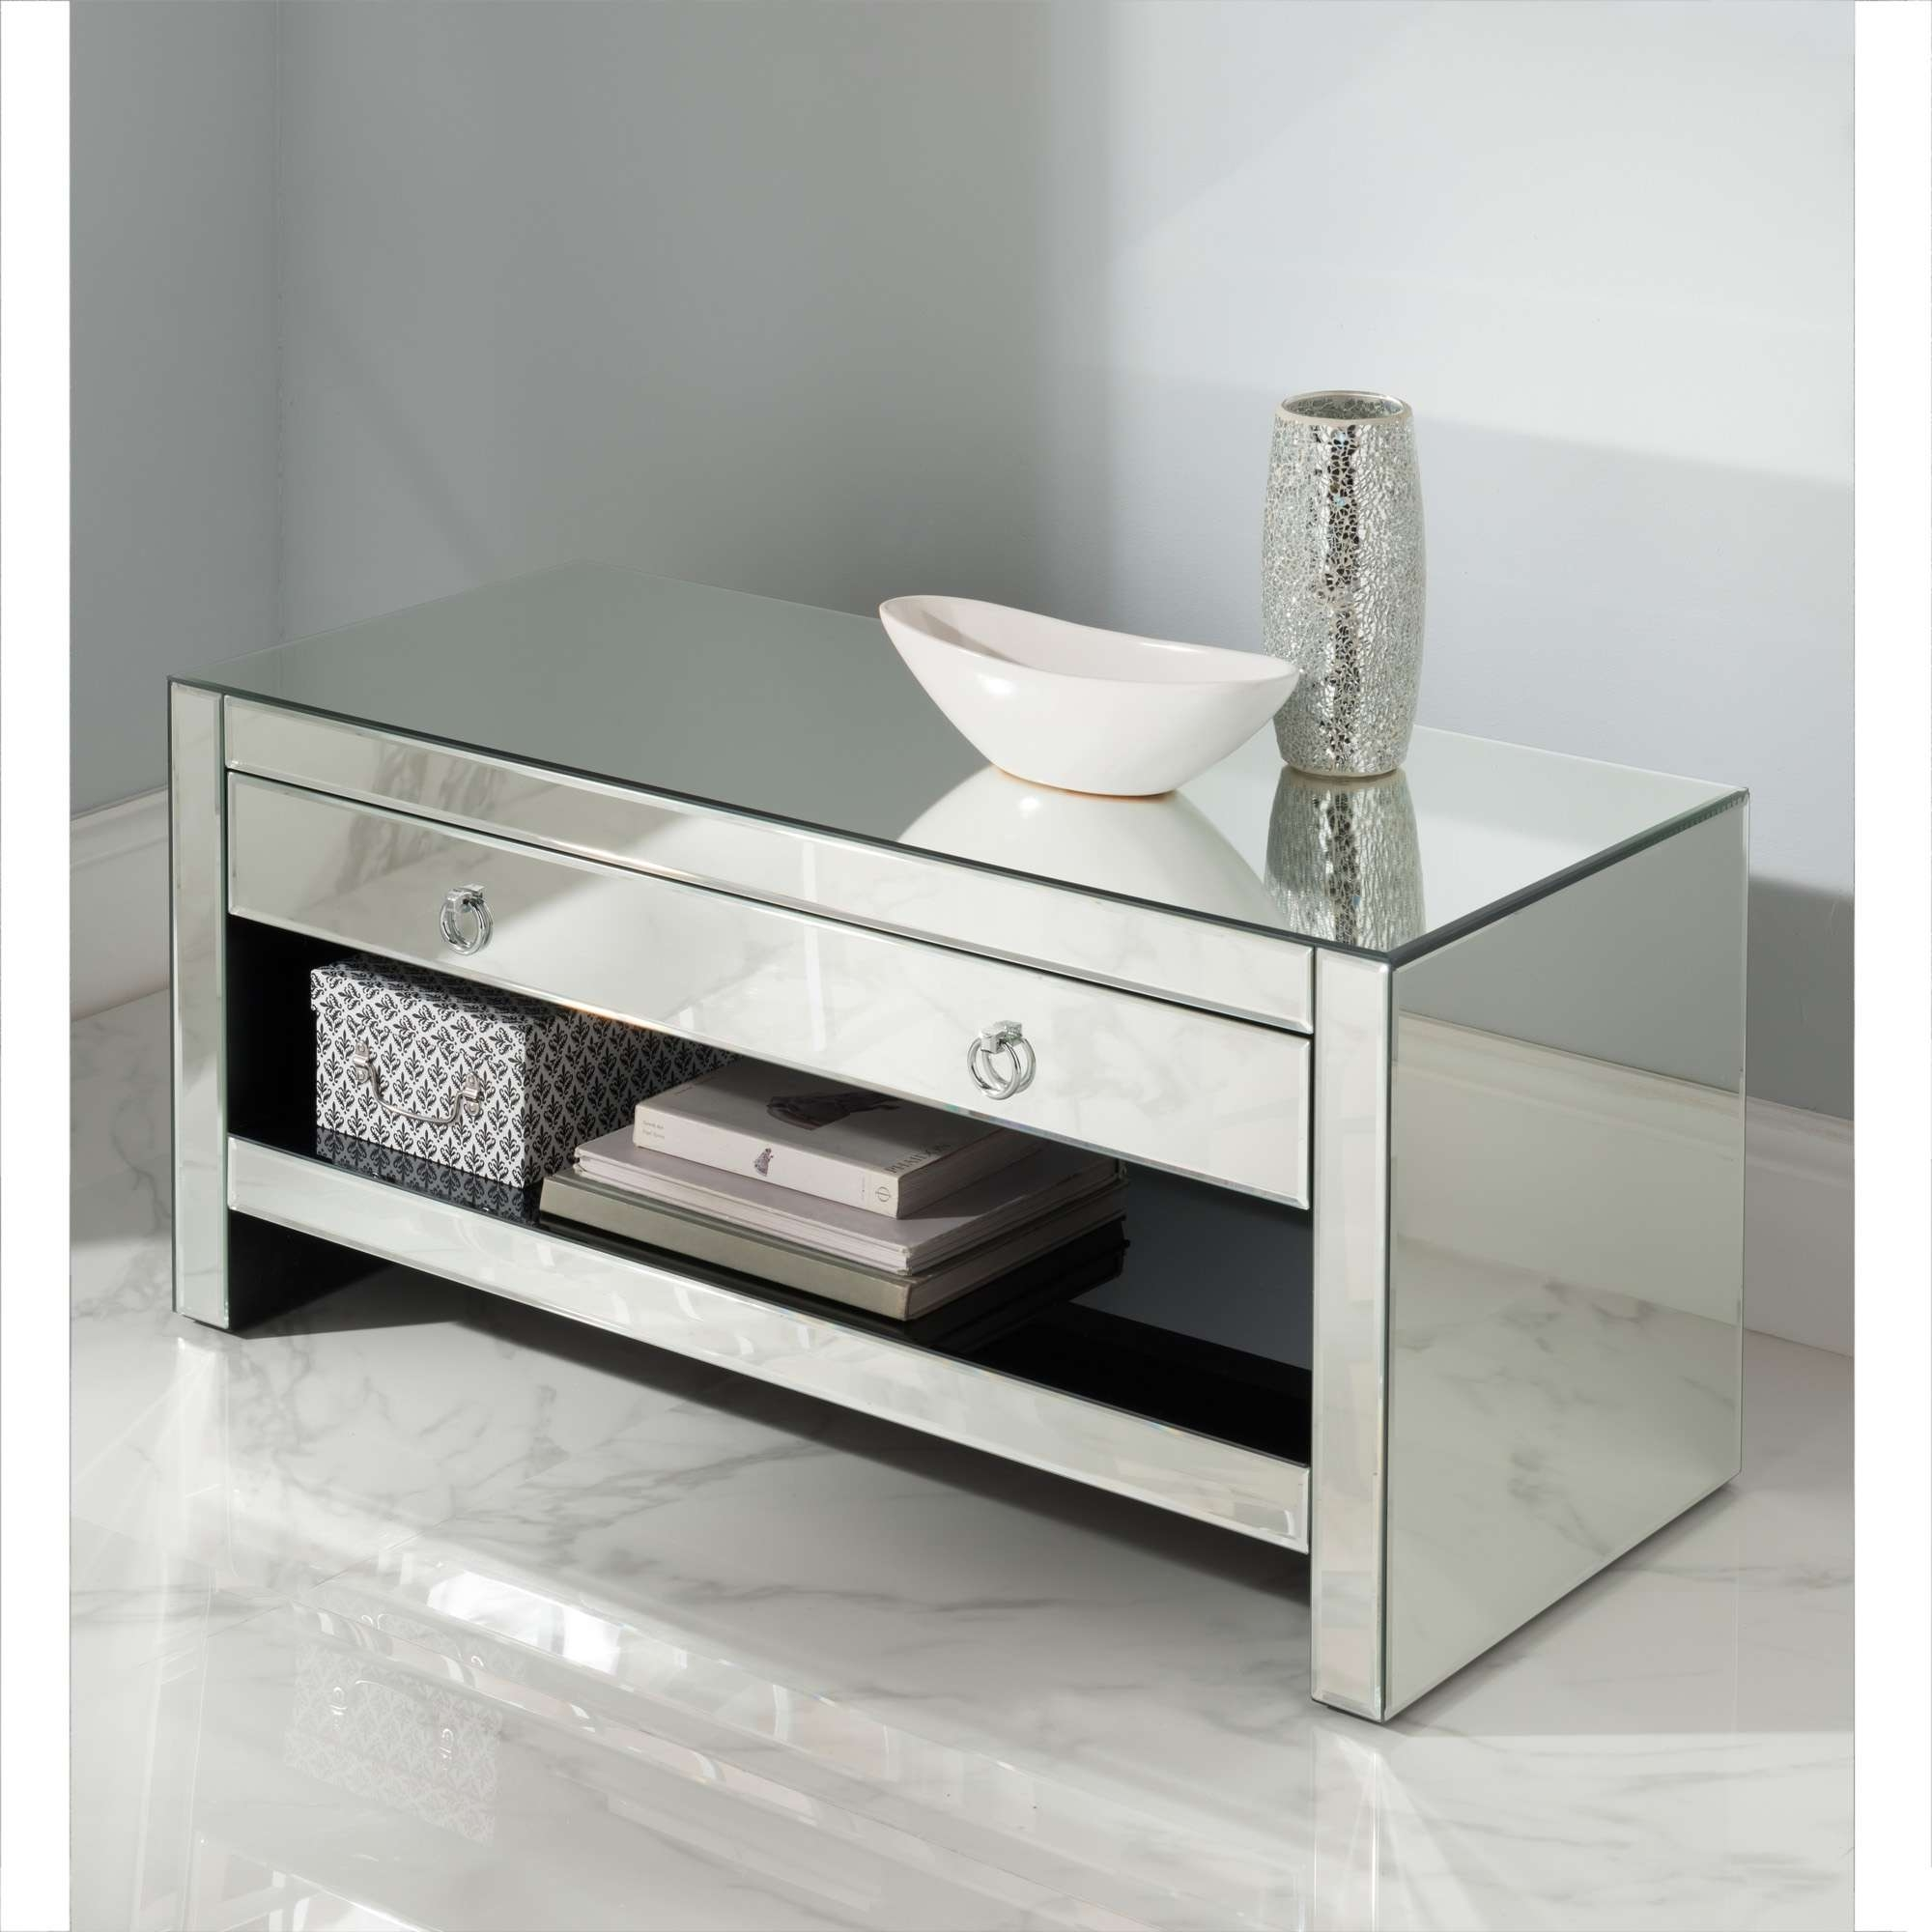 Mirrored Tv Cabinet | Glass Venetian Furniture | Homesdirect365 With Regard To Mirrored Tv Cabinets (View 3 of 20)